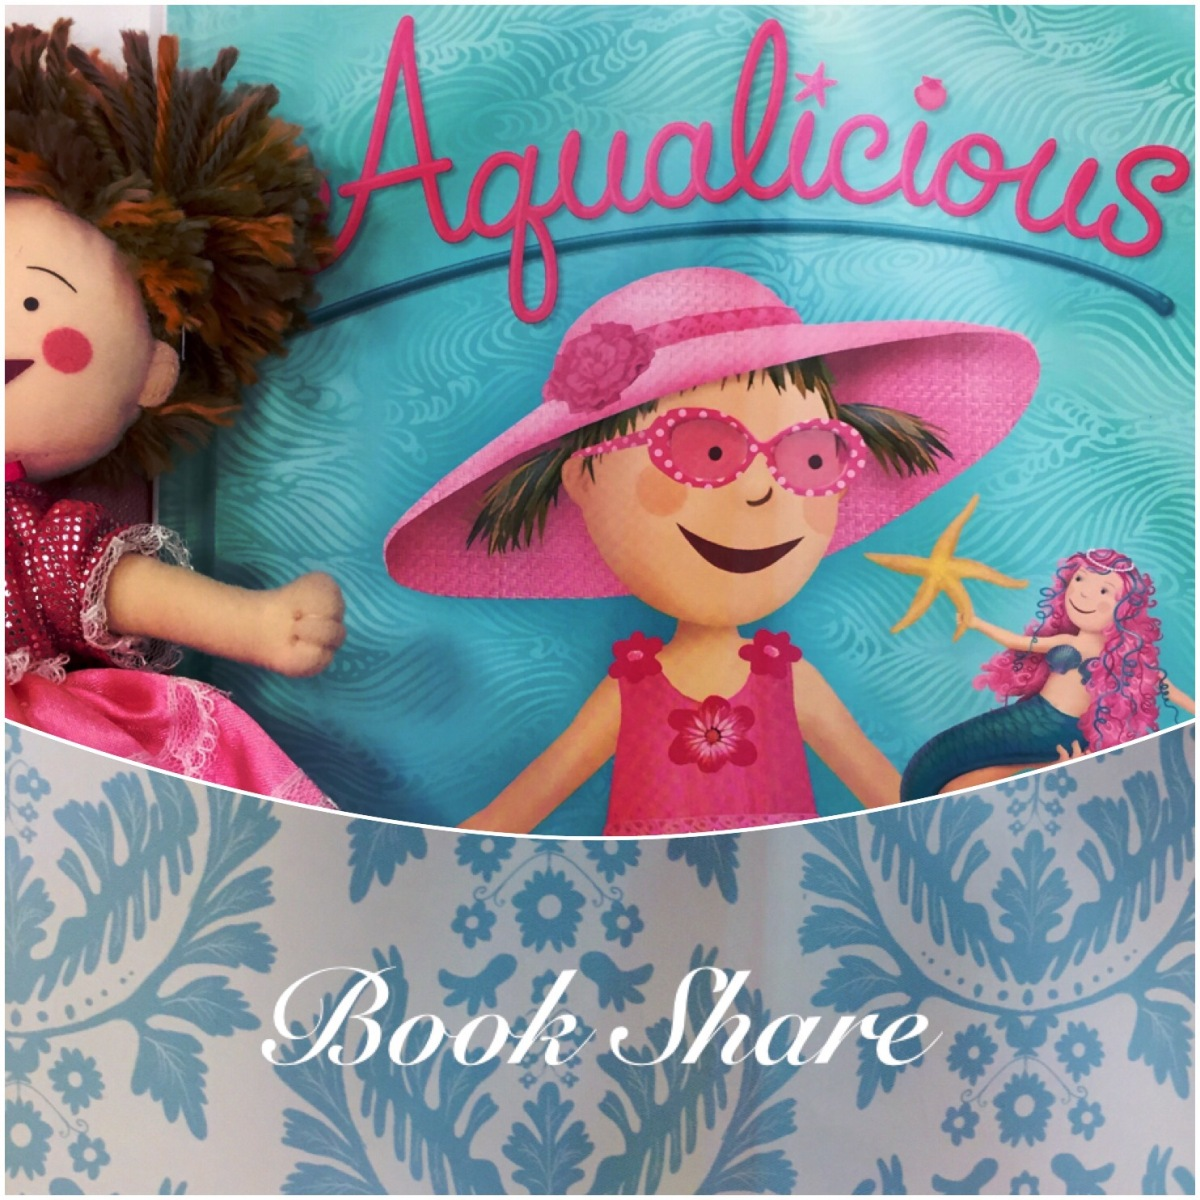 Book Share: Aqualicious | Victoria Kann